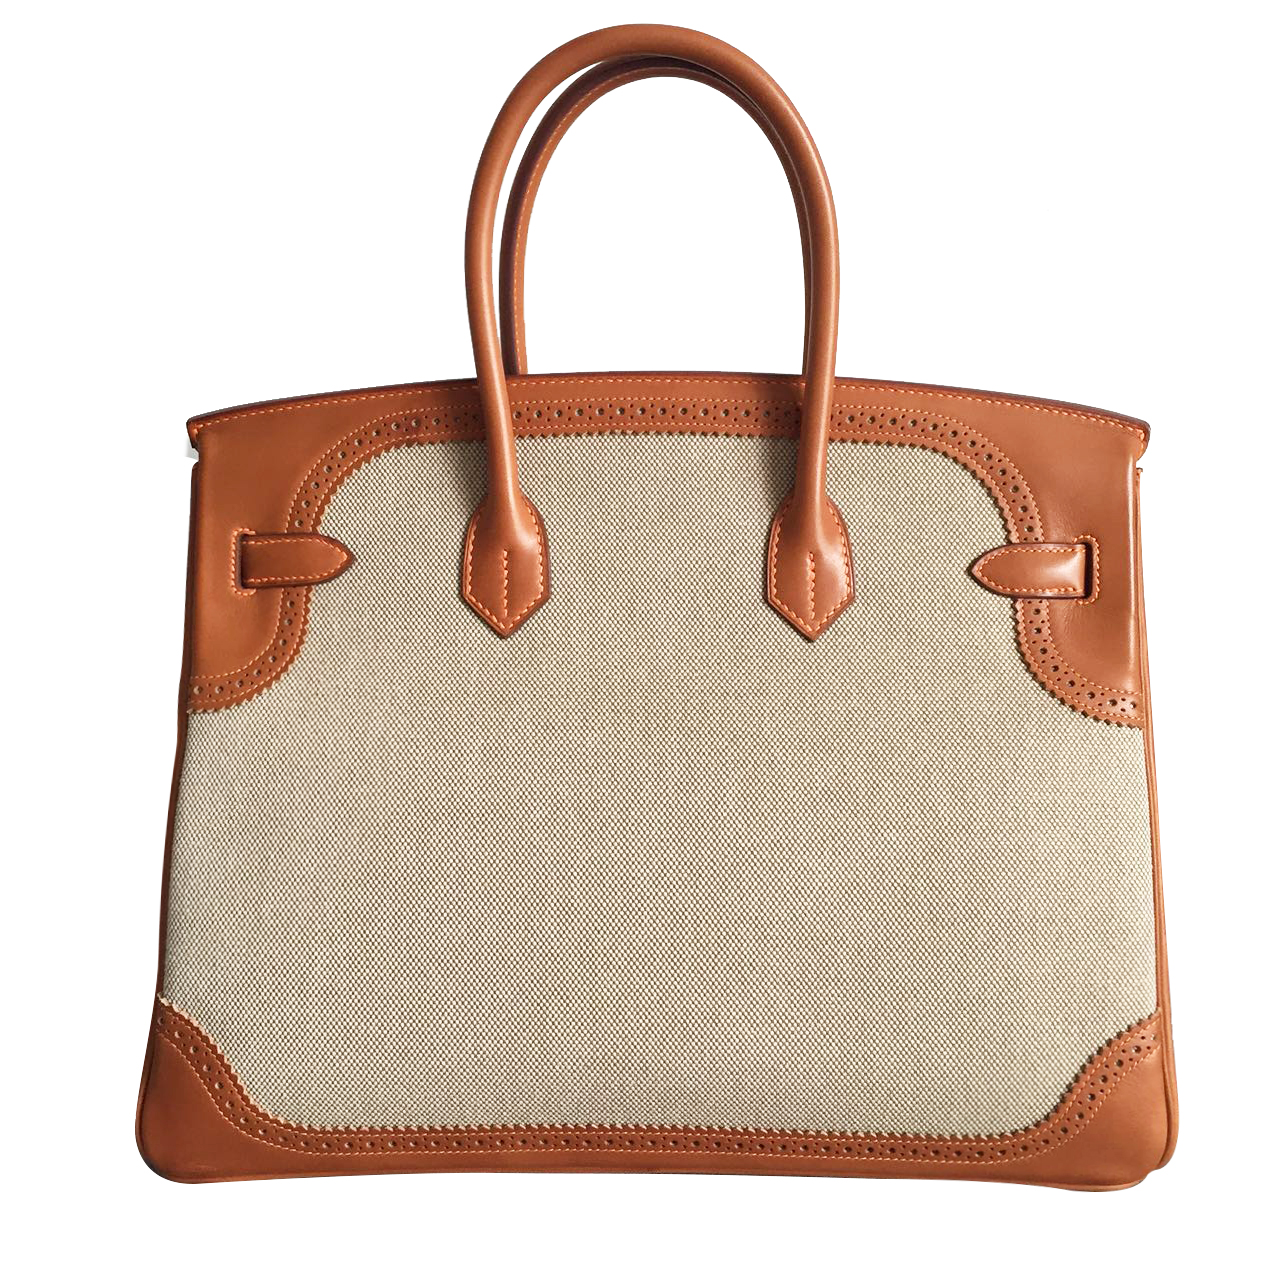 9b34fb472f21 ... Worldwide shipping and secure payment when you buy this Hermes Birkin  35 Barenia Ghillis PHW